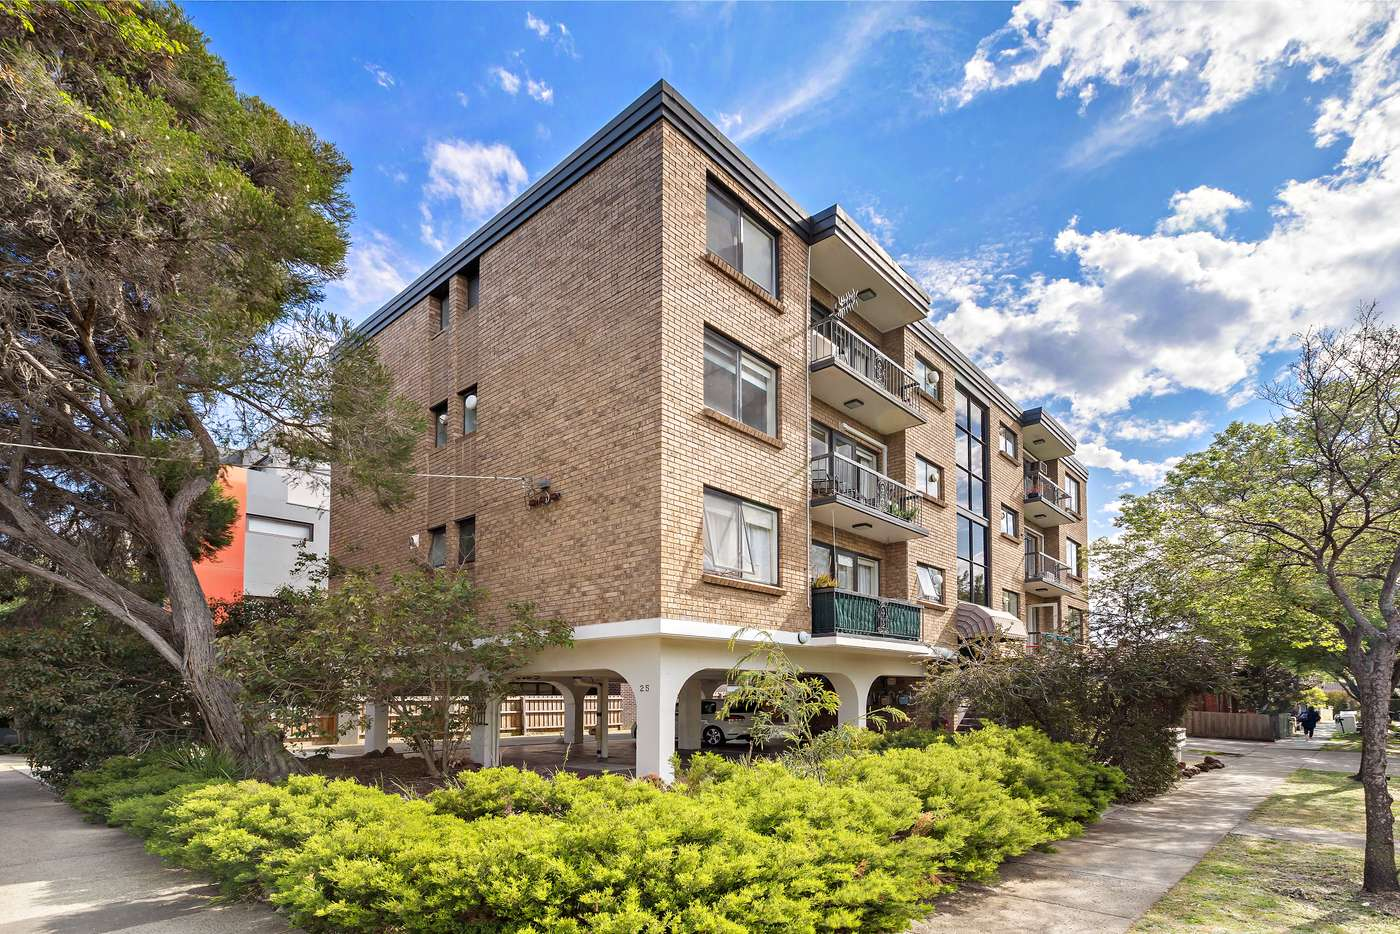 Main view of Homely apartment listing, 7/25 Irving Avenue, Prahran VIC 3181